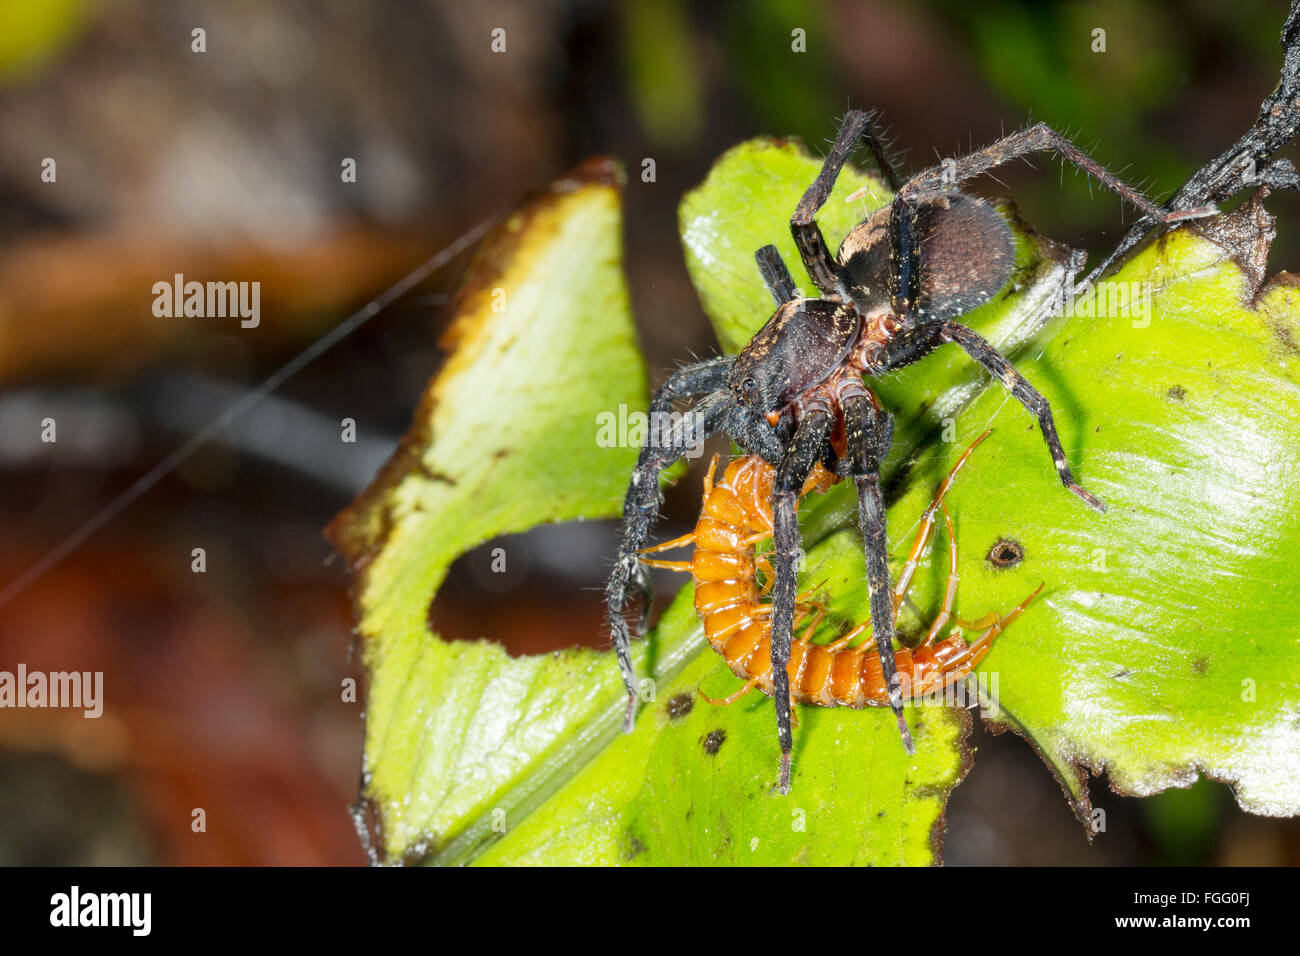 A large wandering spider (family Ctenidae) feeding on a centipede in the rainforest understory, Pastaza province, - Stock Image